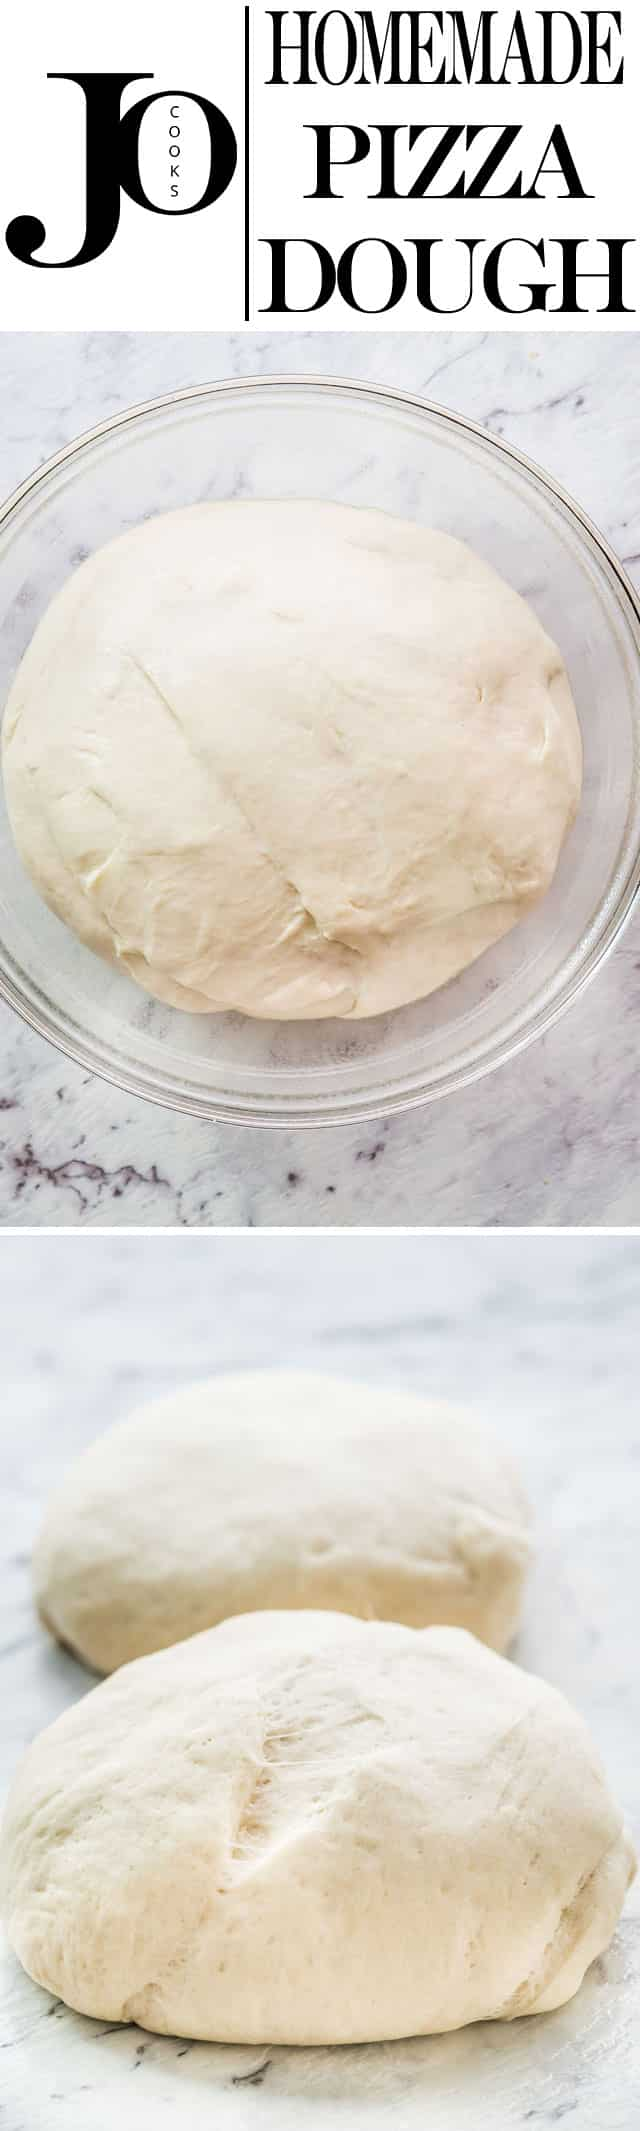 Making pizza dough at home couldn't get any easier with my simple pizza dough recipe. You'll never want to buy or order pizza again.